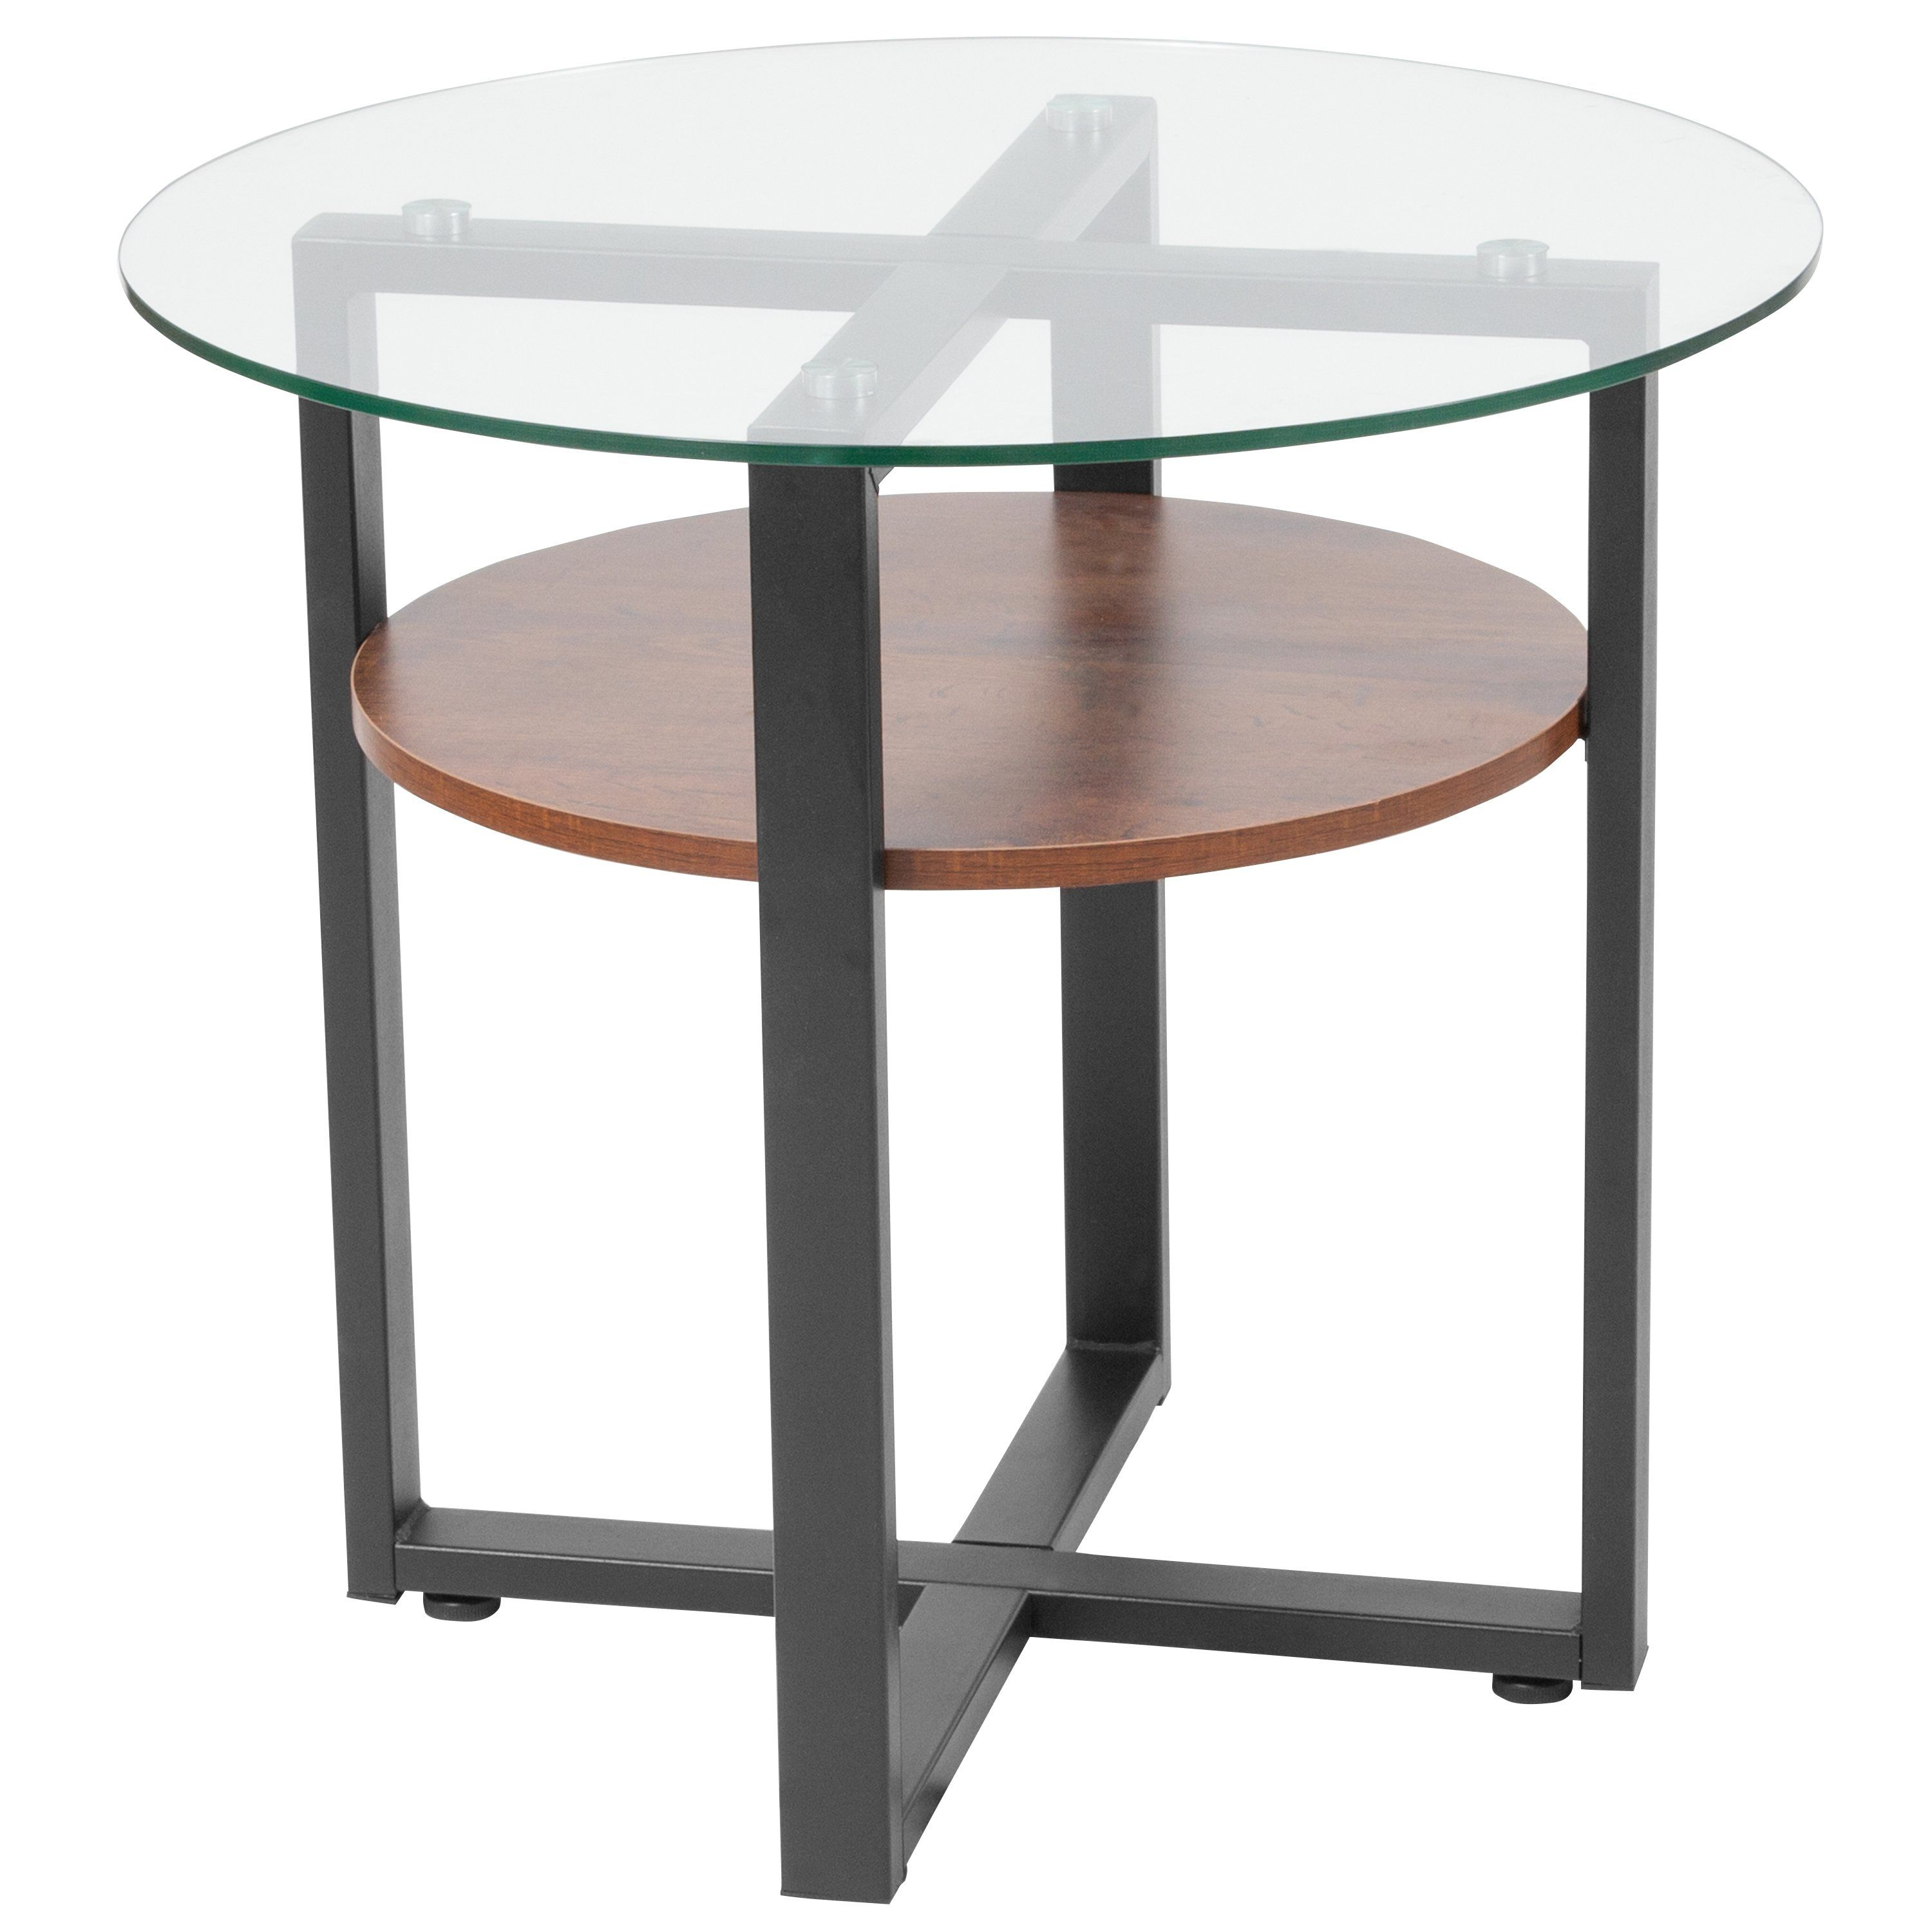 B Home Collection Glass Side Table With Rustic Oak Wood Finish And Black Metal Legs Glass Side Tables Side Table Wood Side Table [ 3000 x 3000 Pixel ]